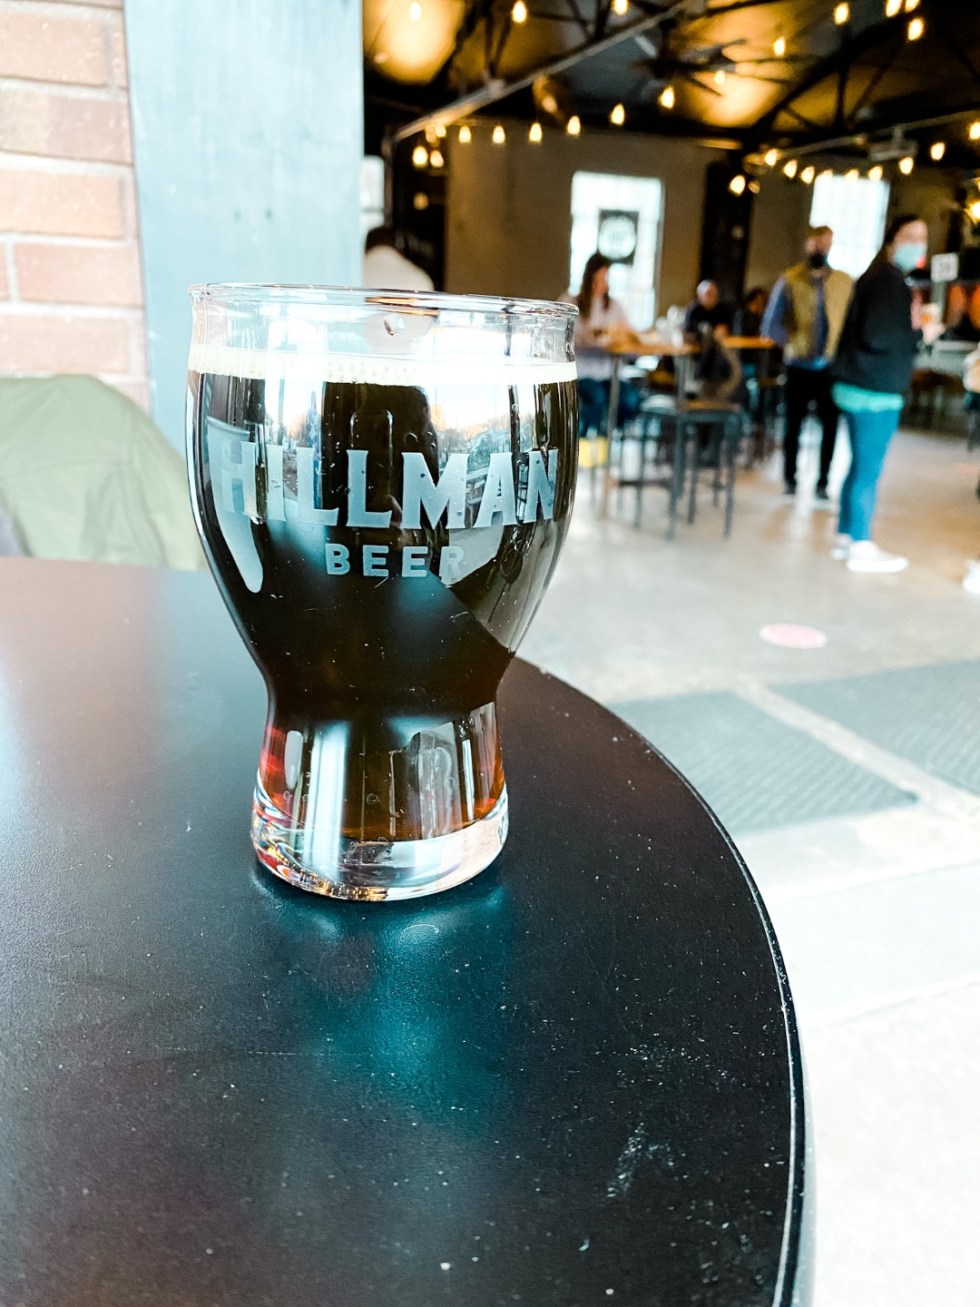 Christmas in Asheville: a Weekend Getaway During the Holidays - I'm Fixin' To - @imfixintoblog |Christmas in Asheville NC by popular NC lifestyle blog, I'm Fixin' To: image of a glass of beer at Hillman Beer.